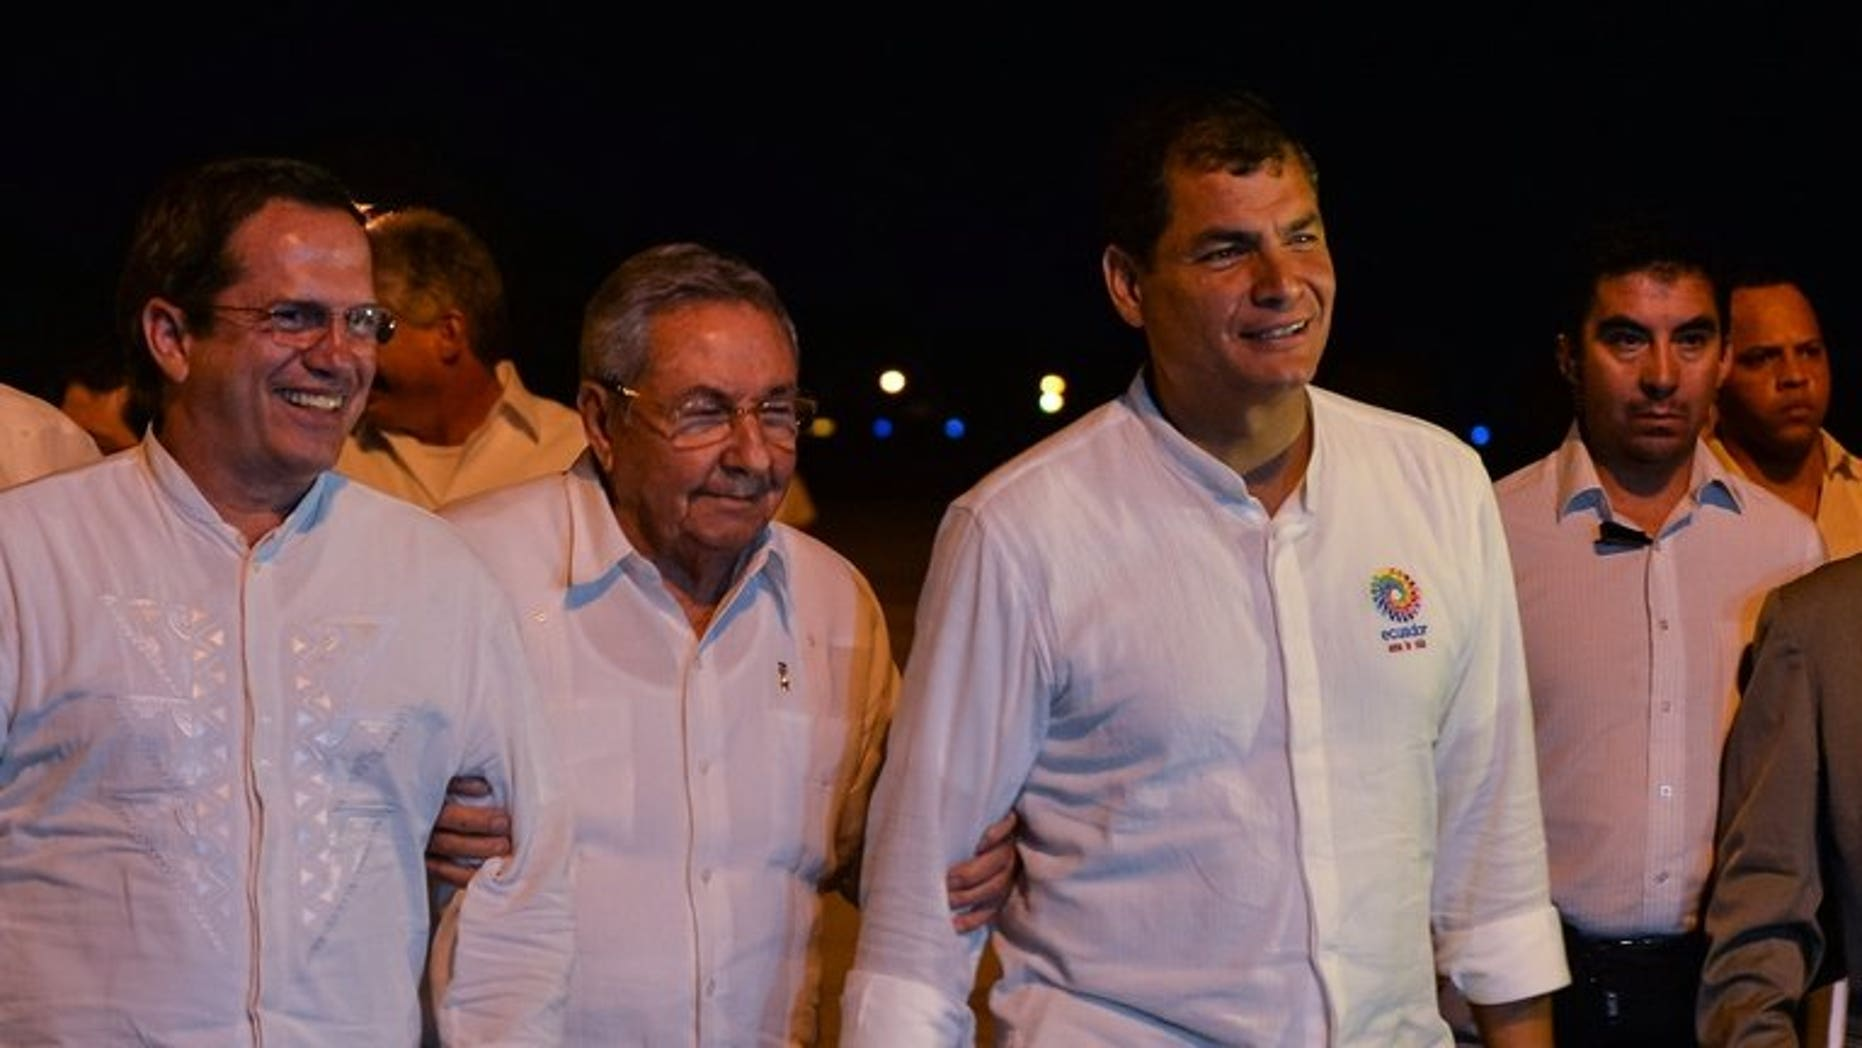 Cuban President Raul Castro (center) is flanked by Ecuadorian counterpart Rafael Correa (right) and Foreign Minister Ricardo Patino at the Jose Marti Airport in Havana, on September 21, 2013. Correa is in Havana to meet Cuban revolutionary leader Fidel Castro and his younger brother Raul Castro.